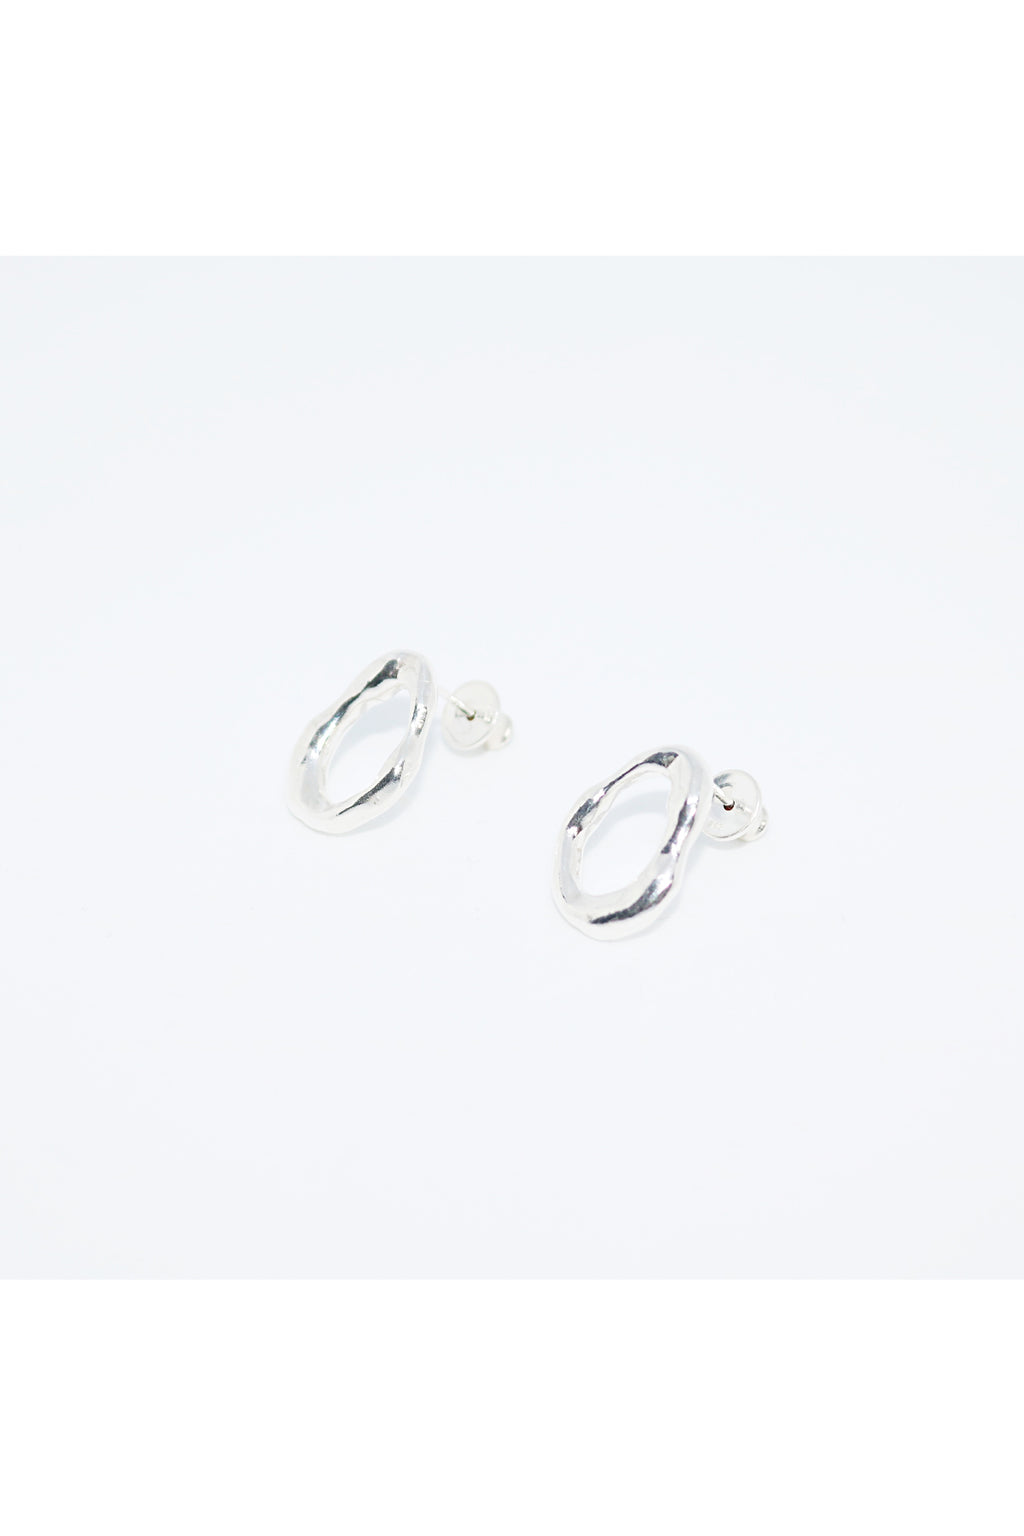 PICOMENT silver flow long grip circle earrings